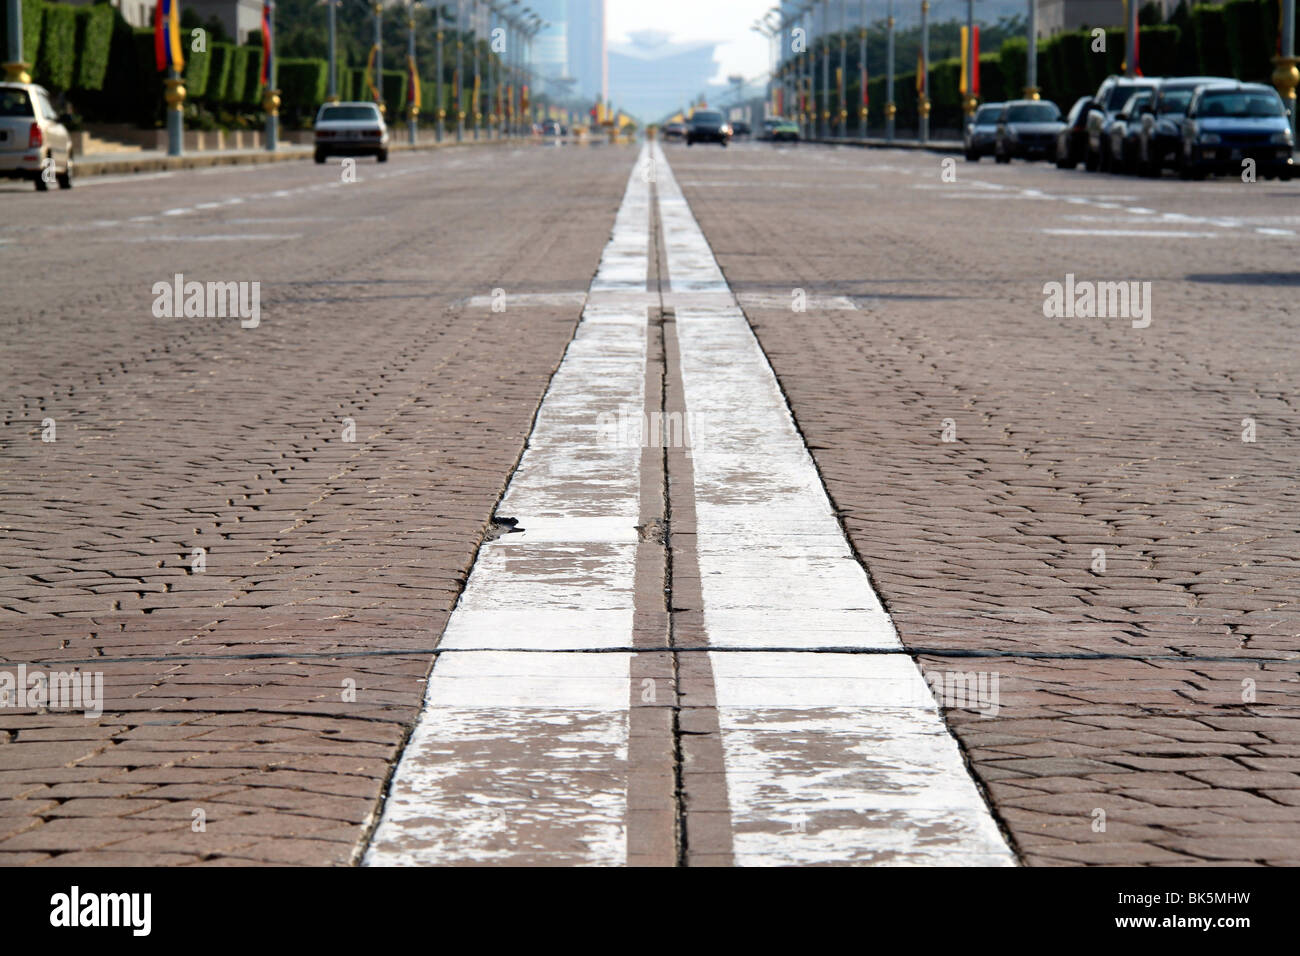 The Road - Stock Image